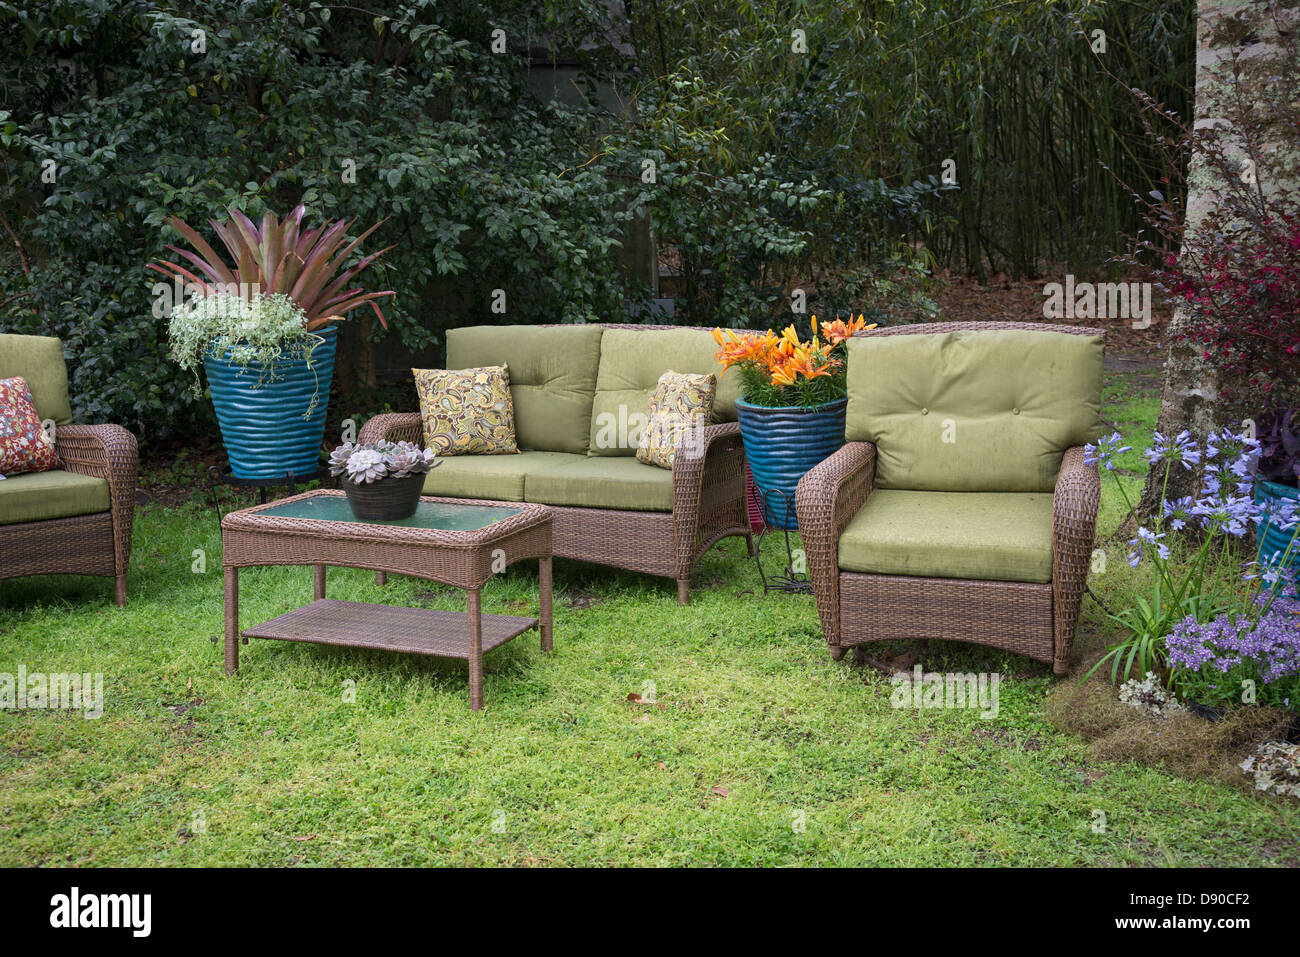 Garden Furniture For Sale High Resolution Stock Photography And Images Alamy - Garden Furniture Clearance Company Dorset